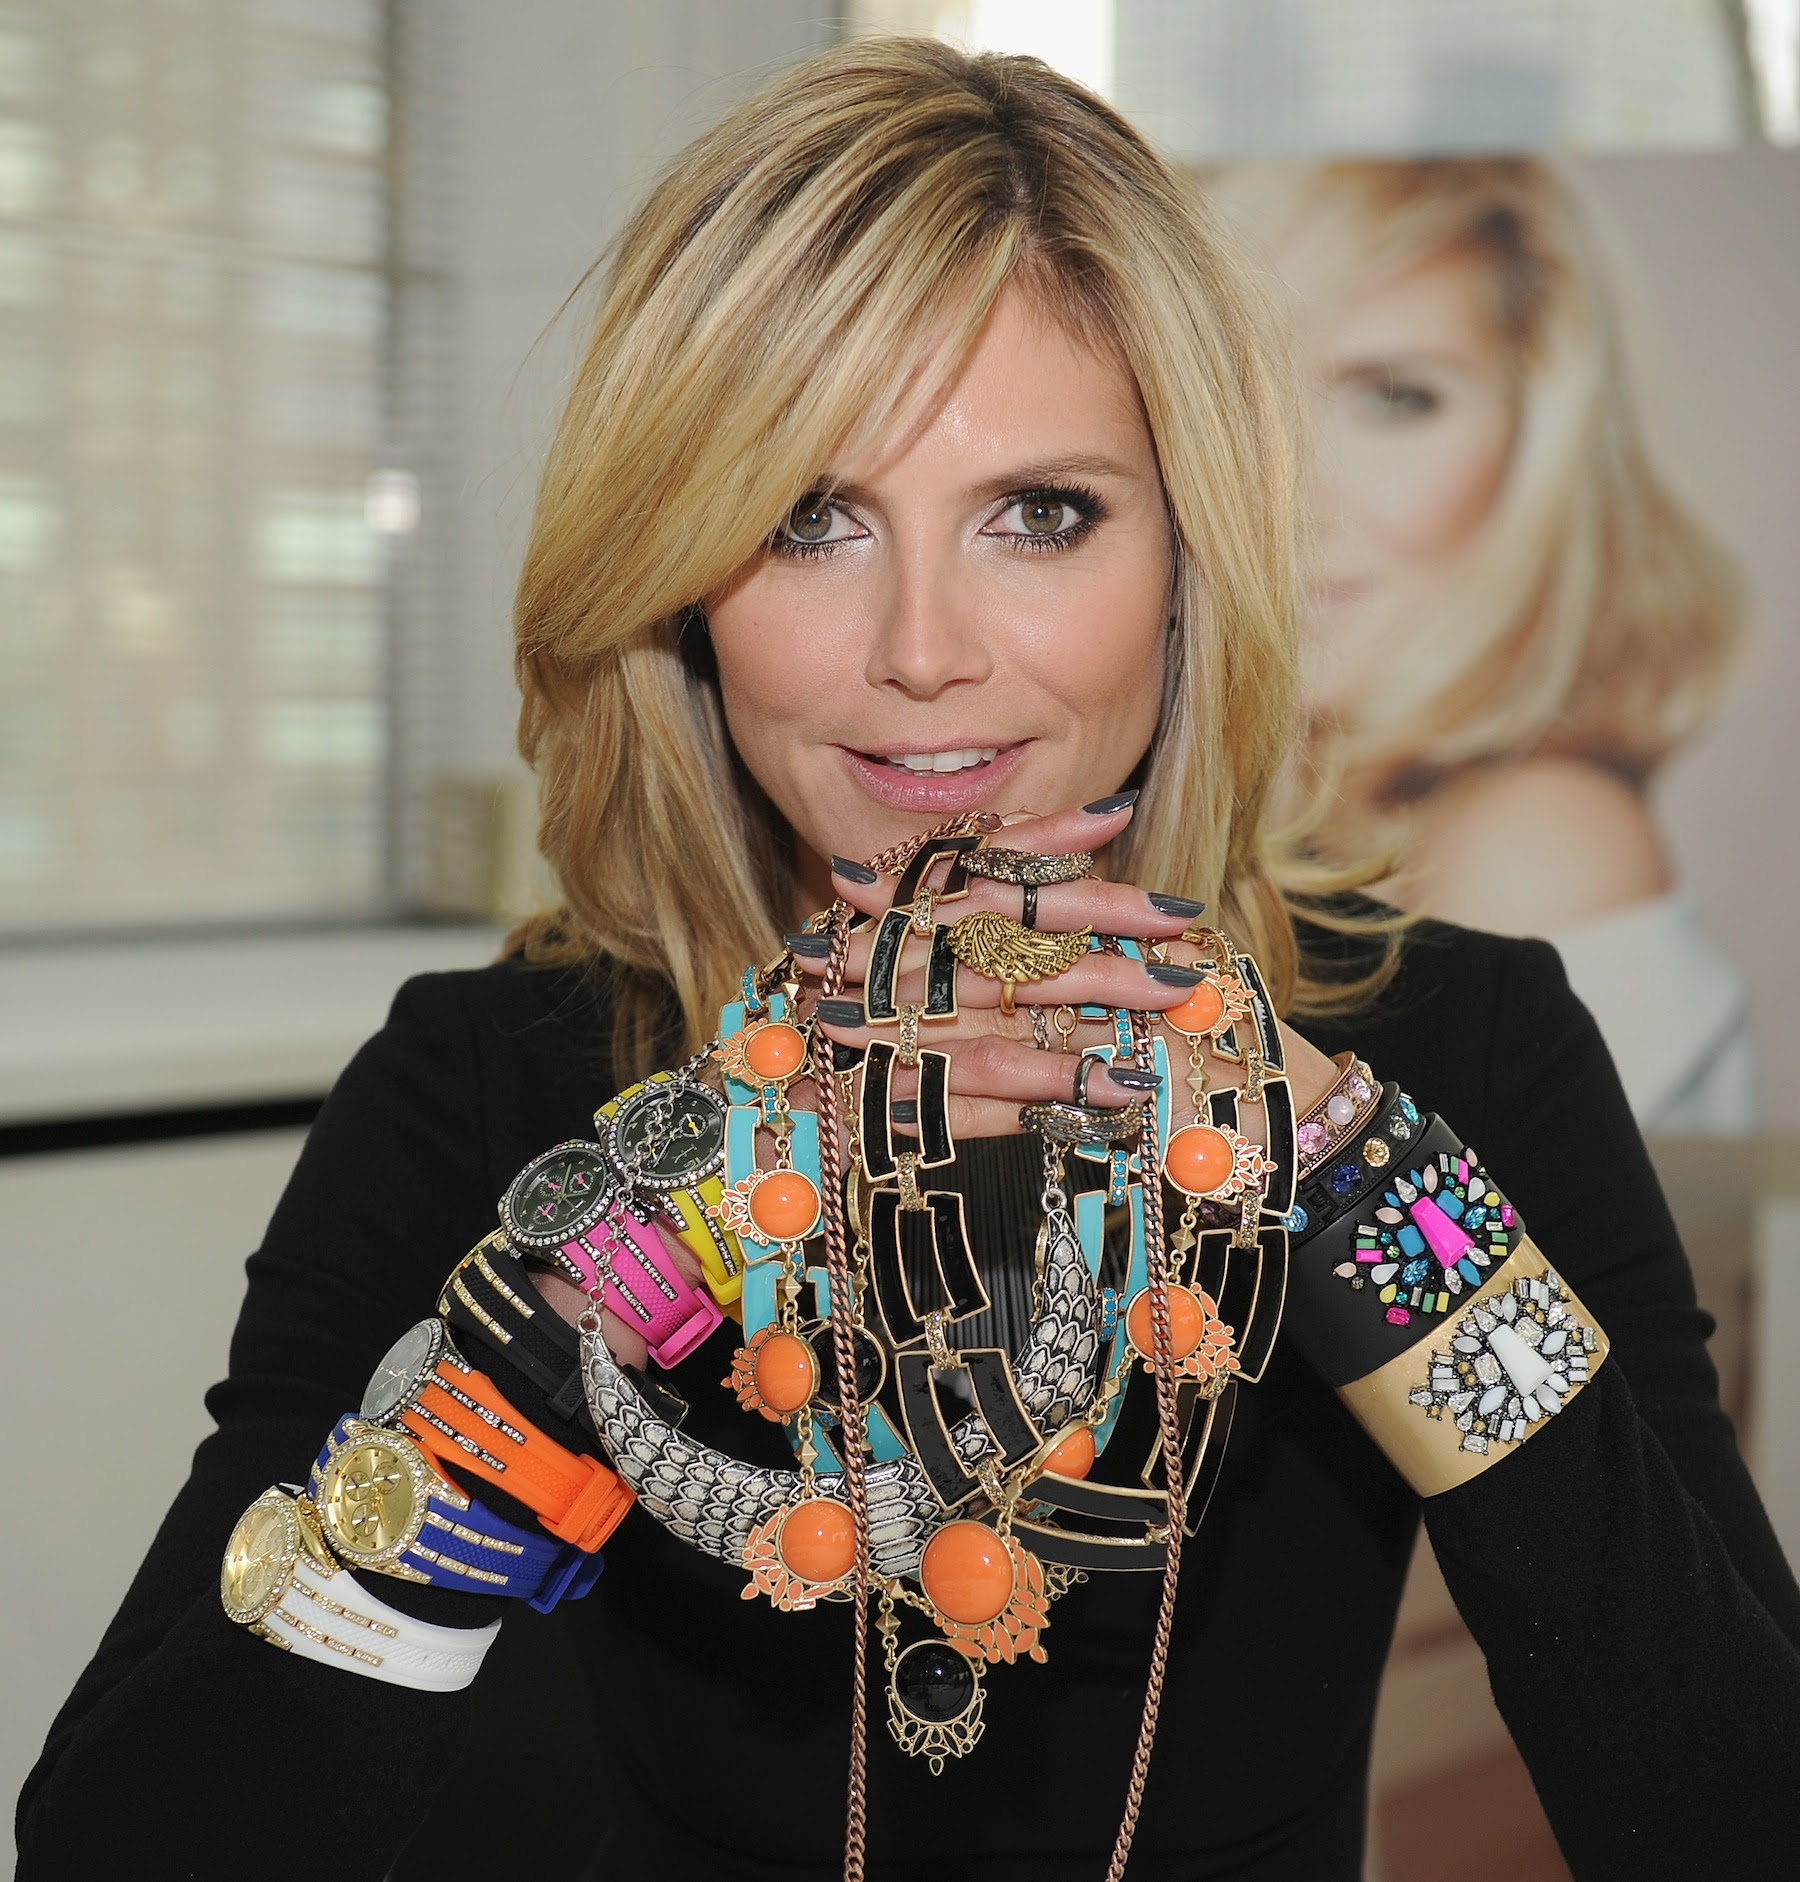 Heidi with pieces from the Wildlife by Heidi Klum QVC Collection (Dimitrios Kambouris/Getty Images for QVC)